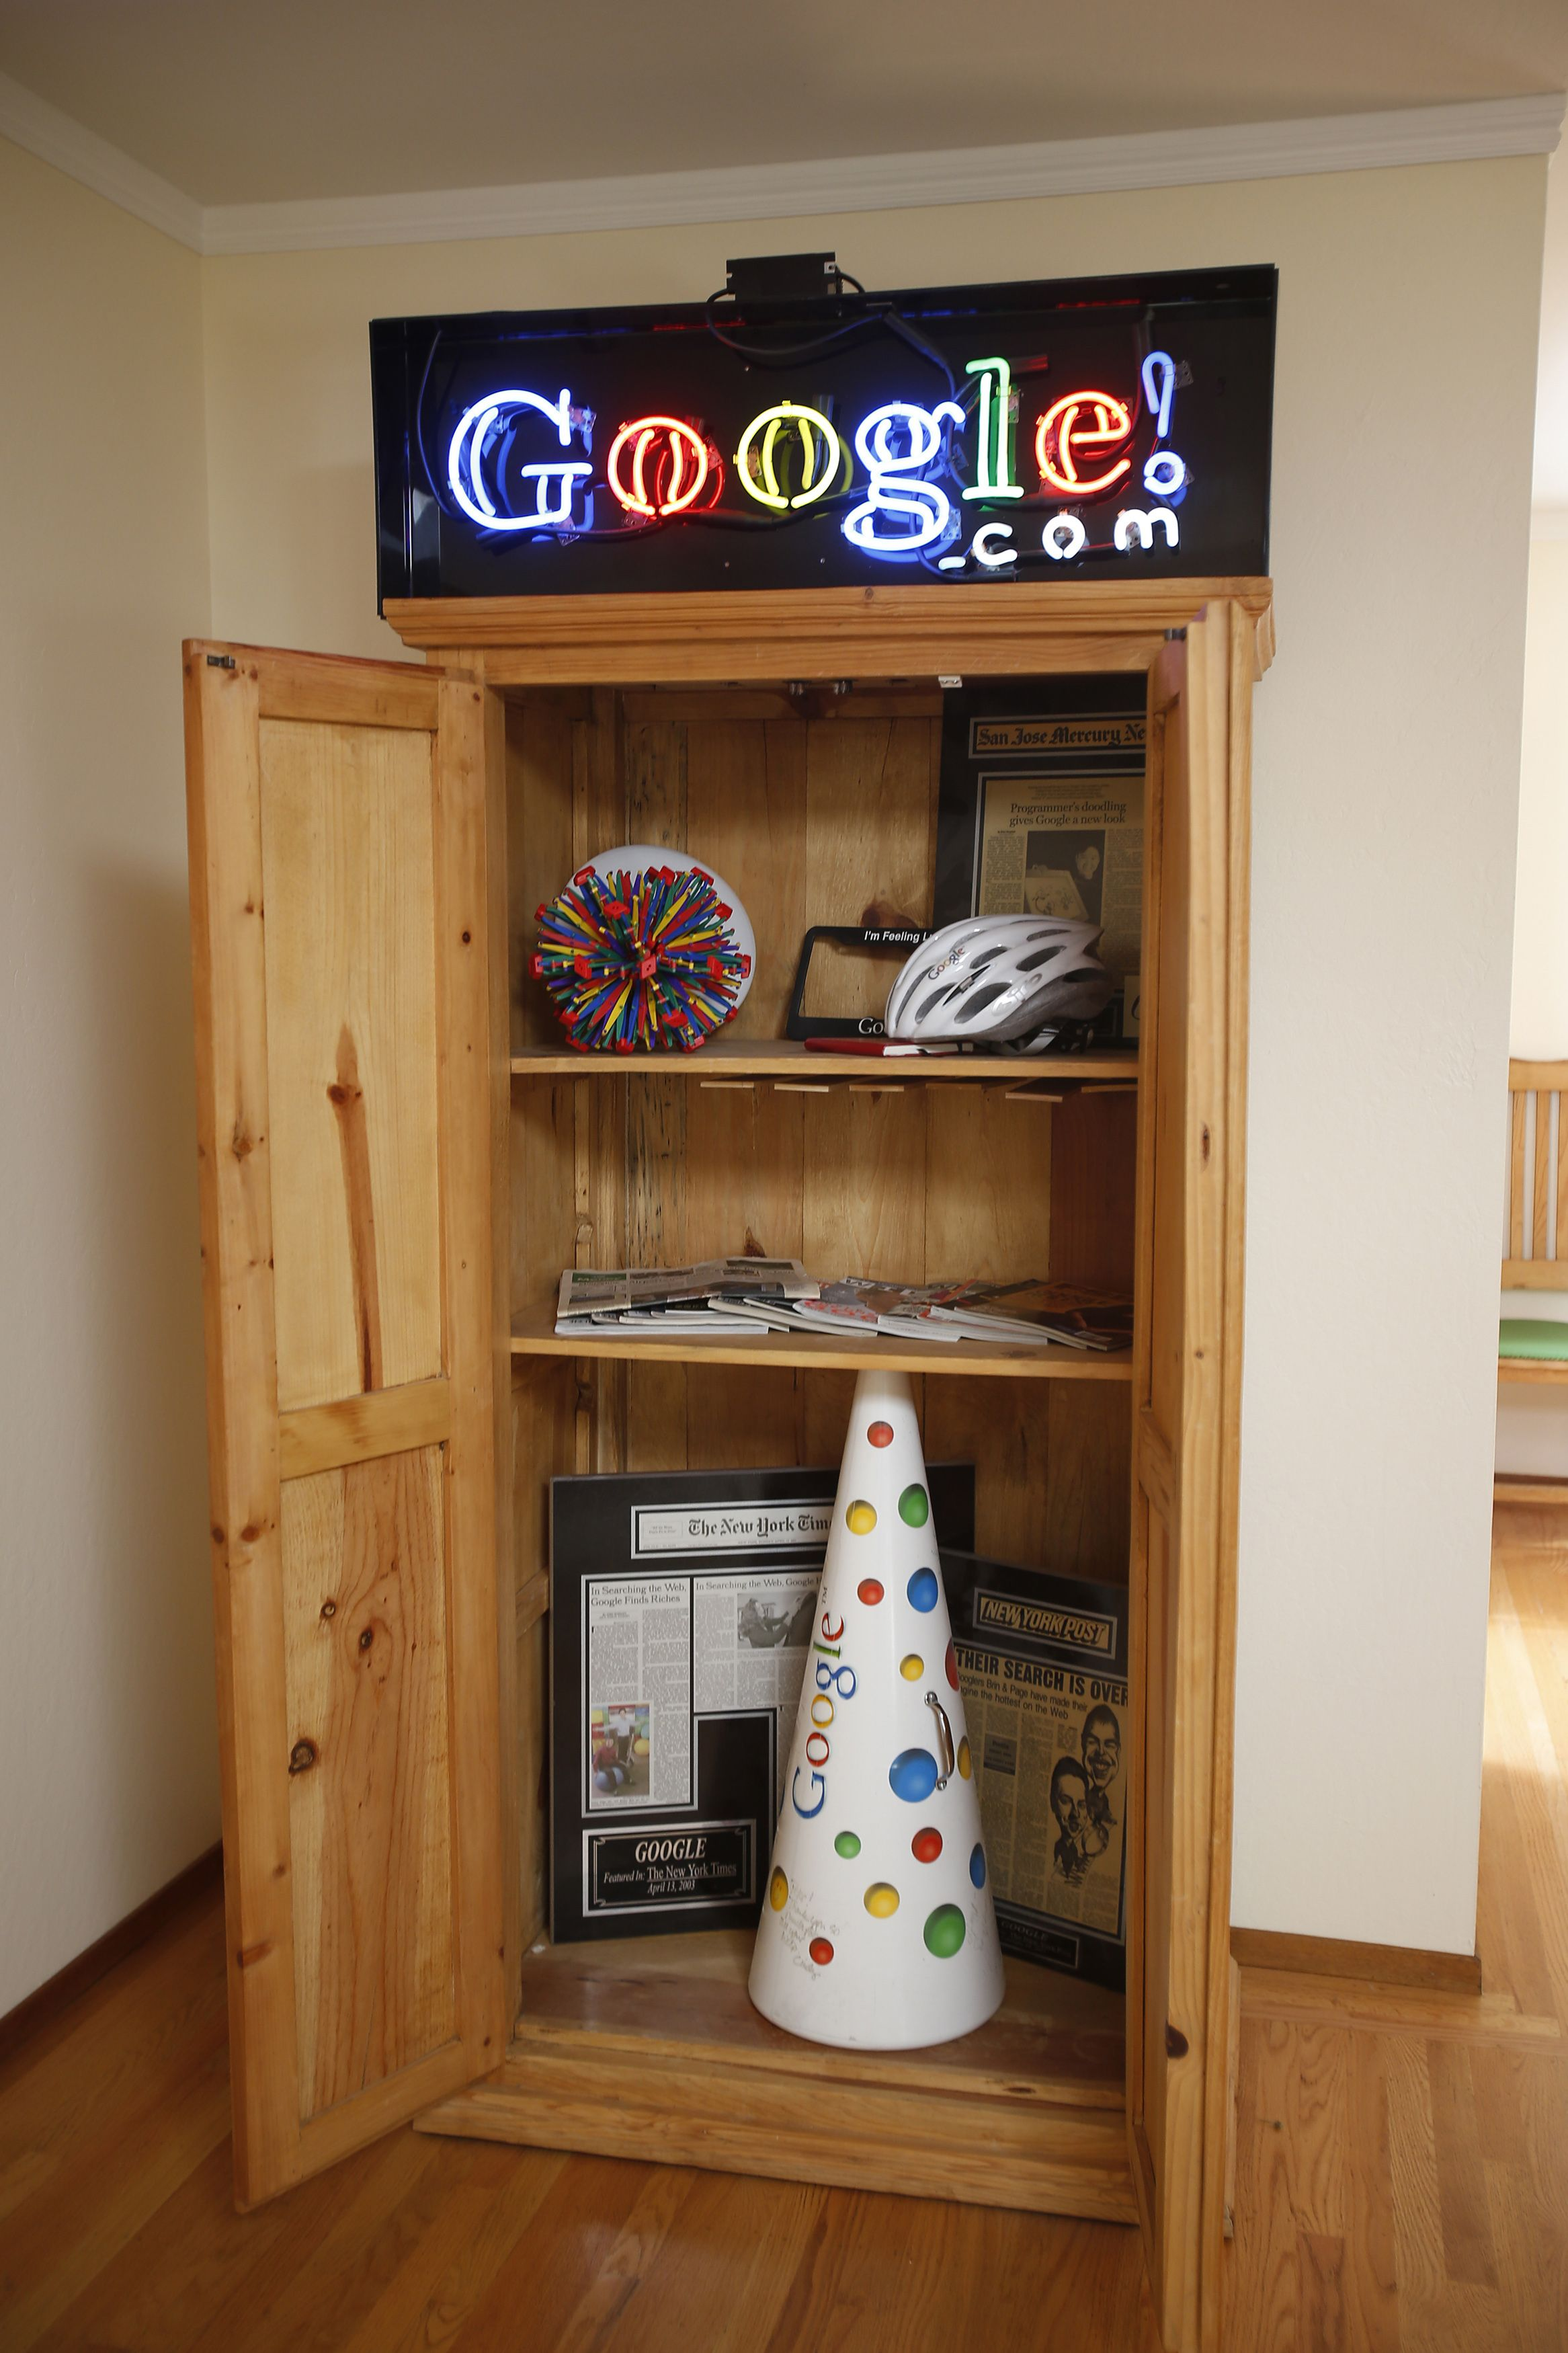 15 amazing Google projects that failed